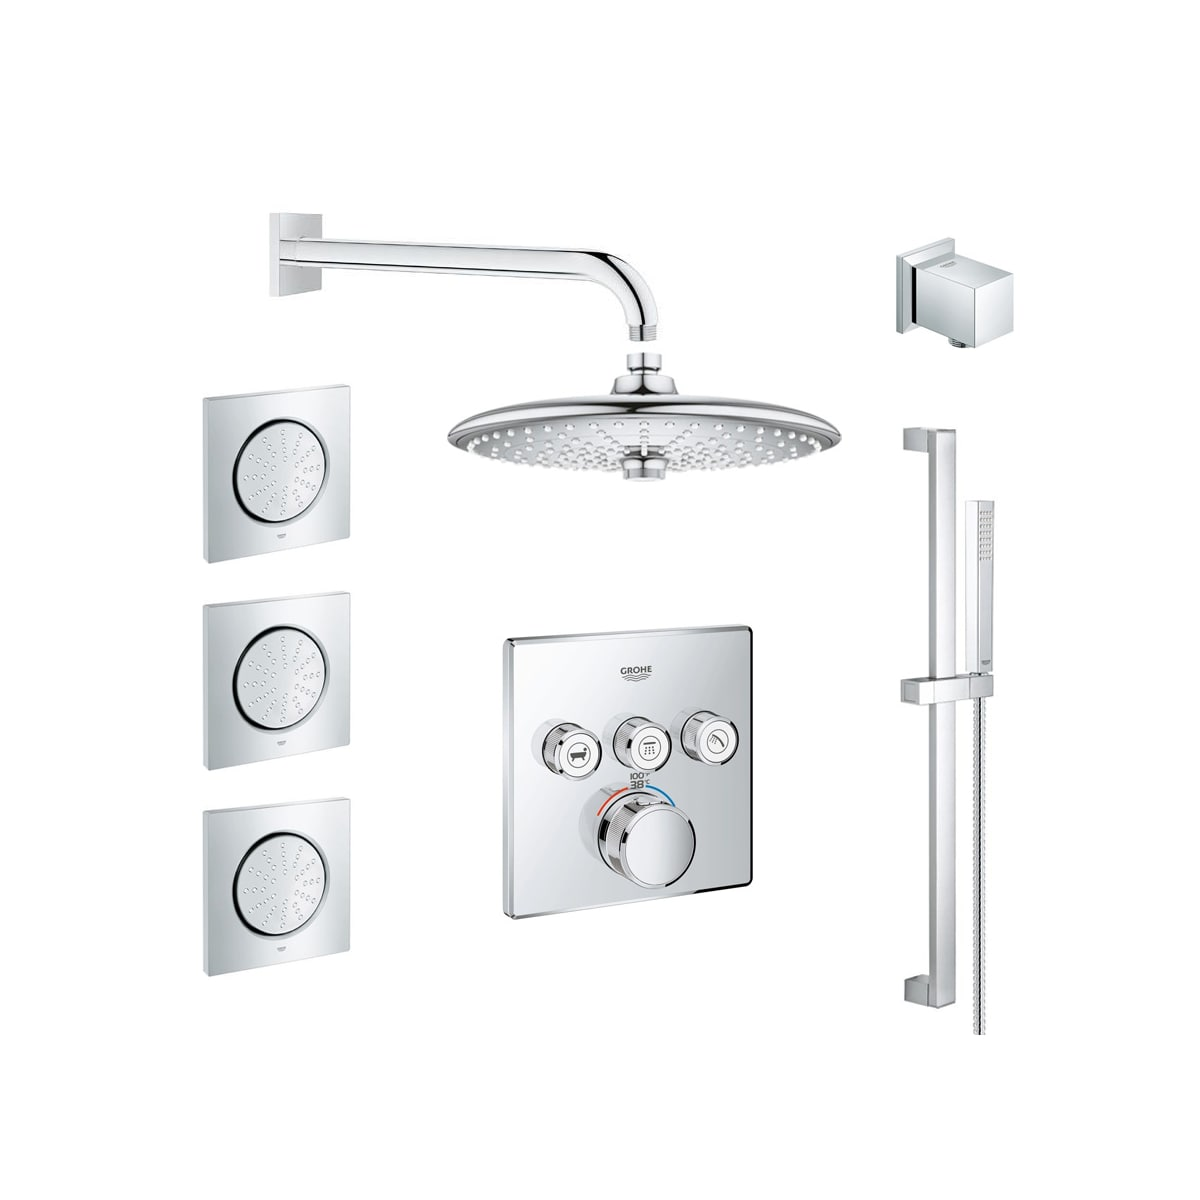 Grohe Gss Grohtherm Sq 10